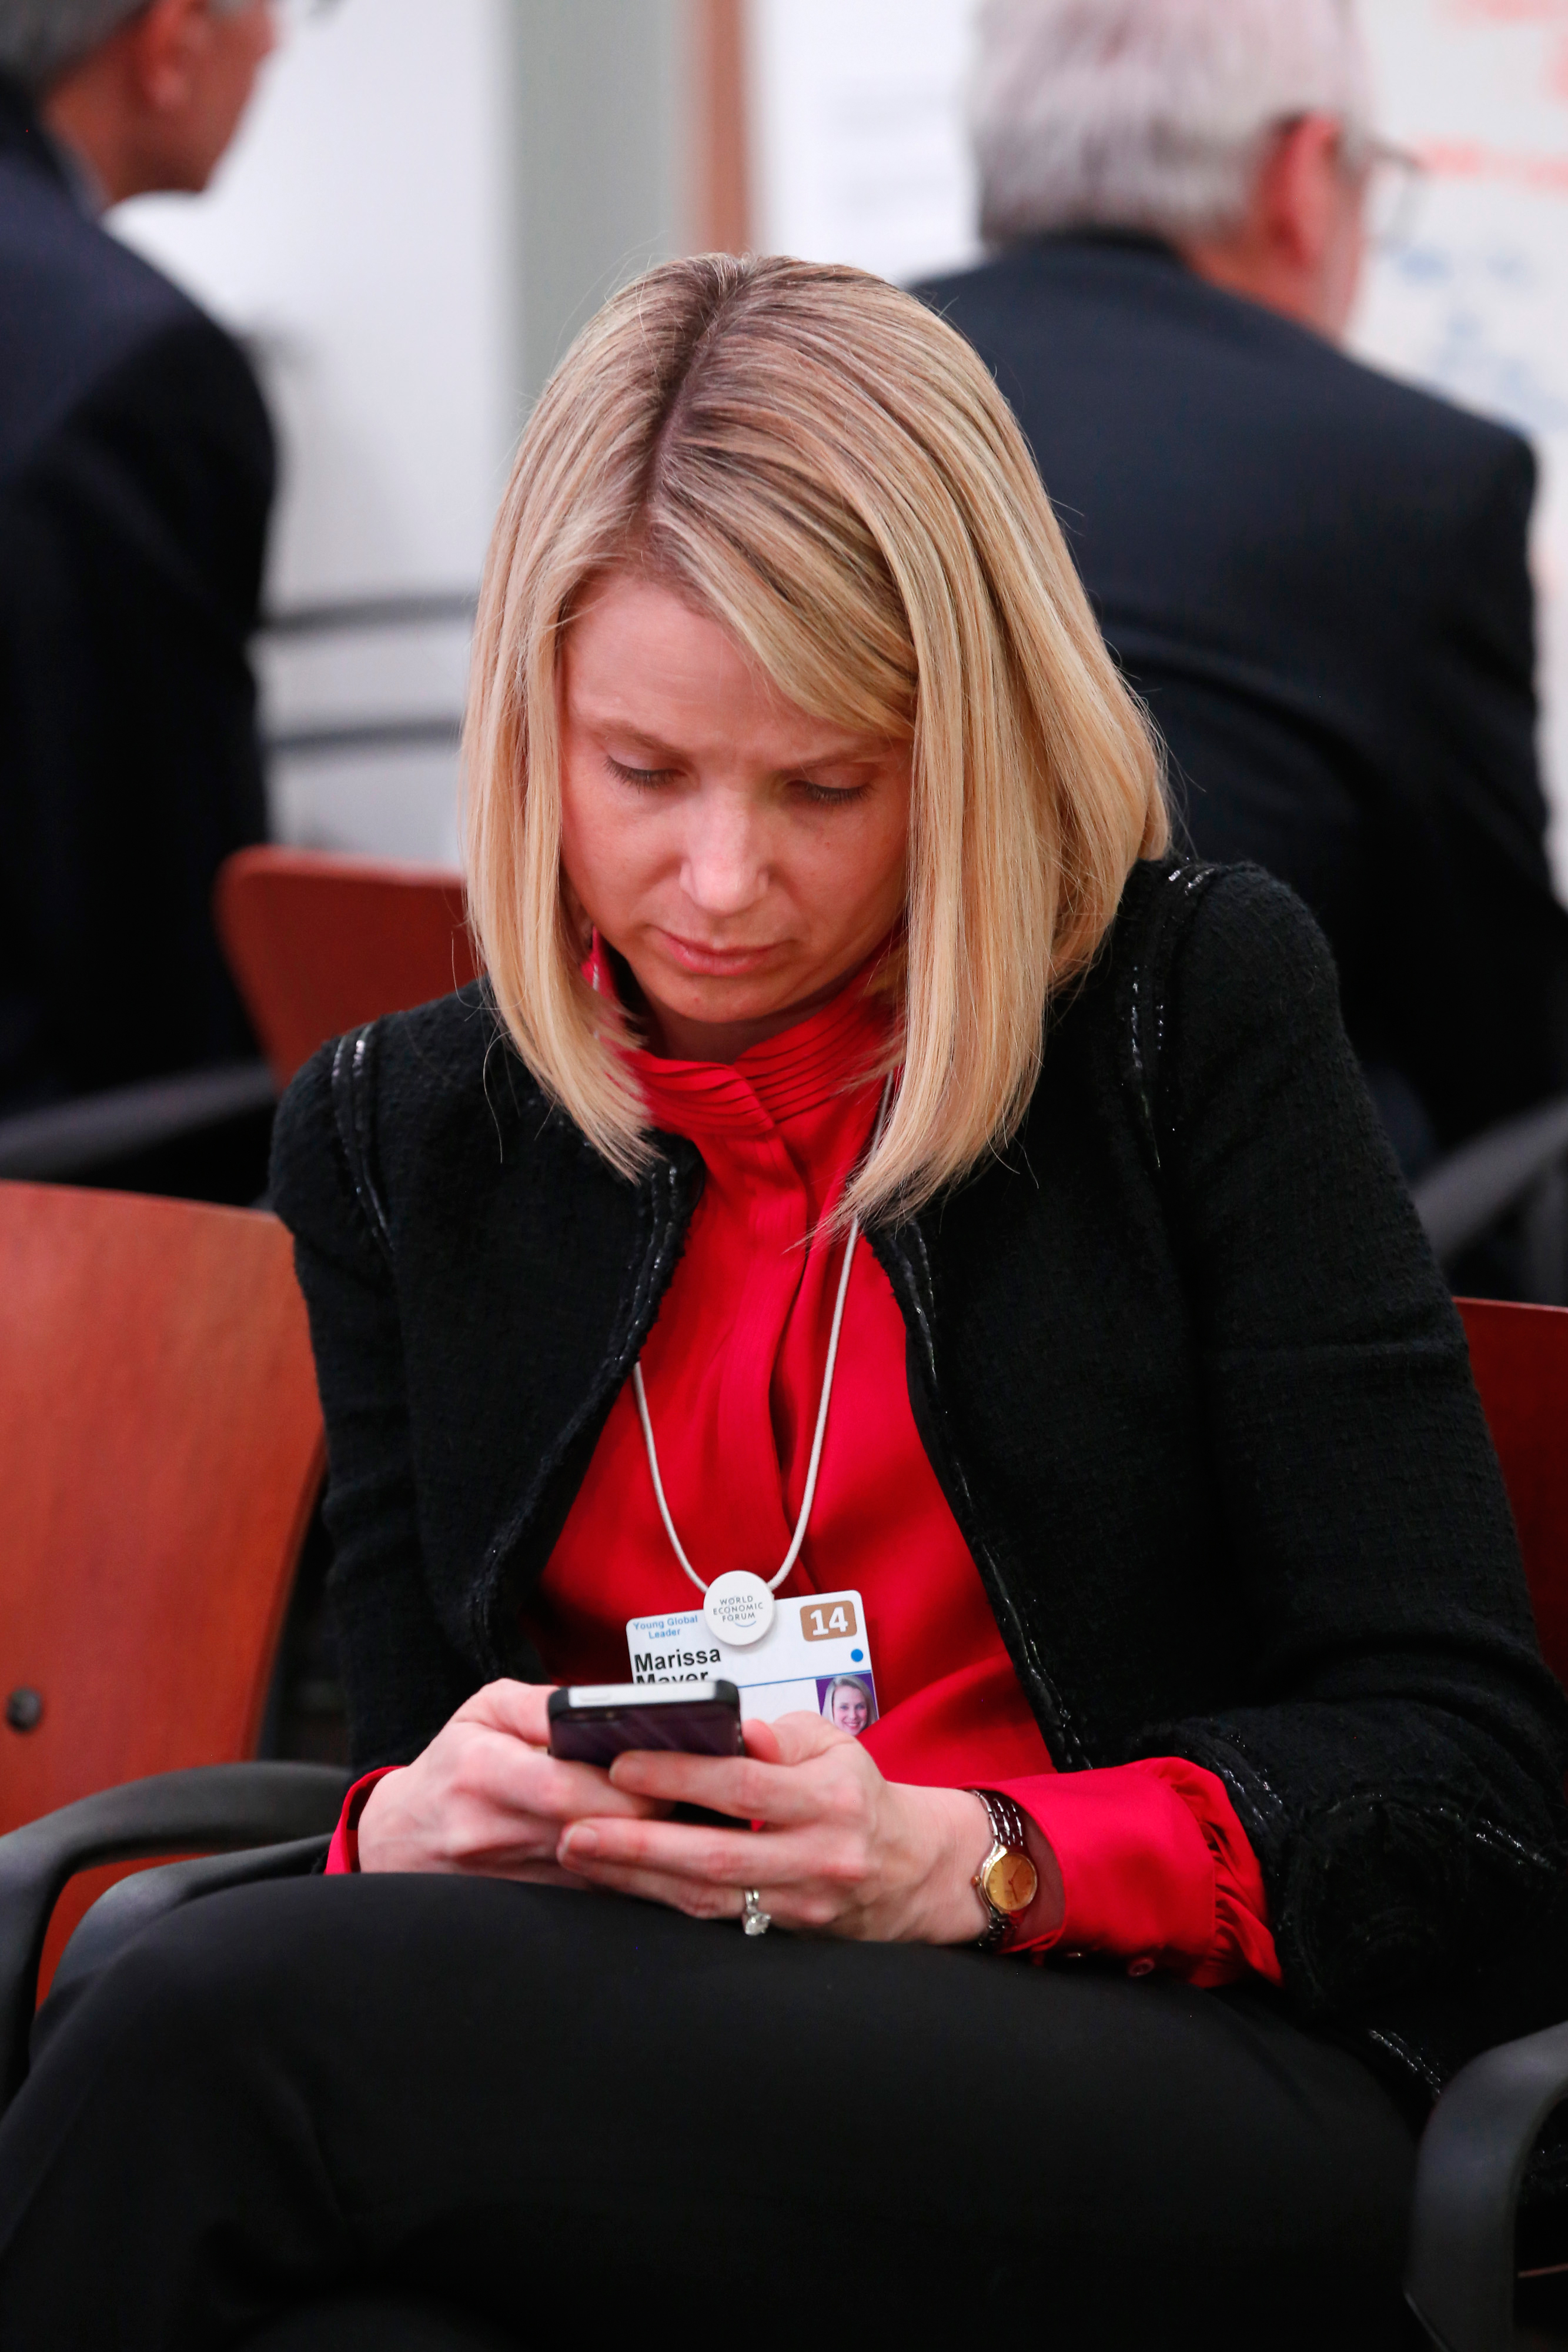 Telecommuting: What Marissa Mayer Got Right—and Wrong